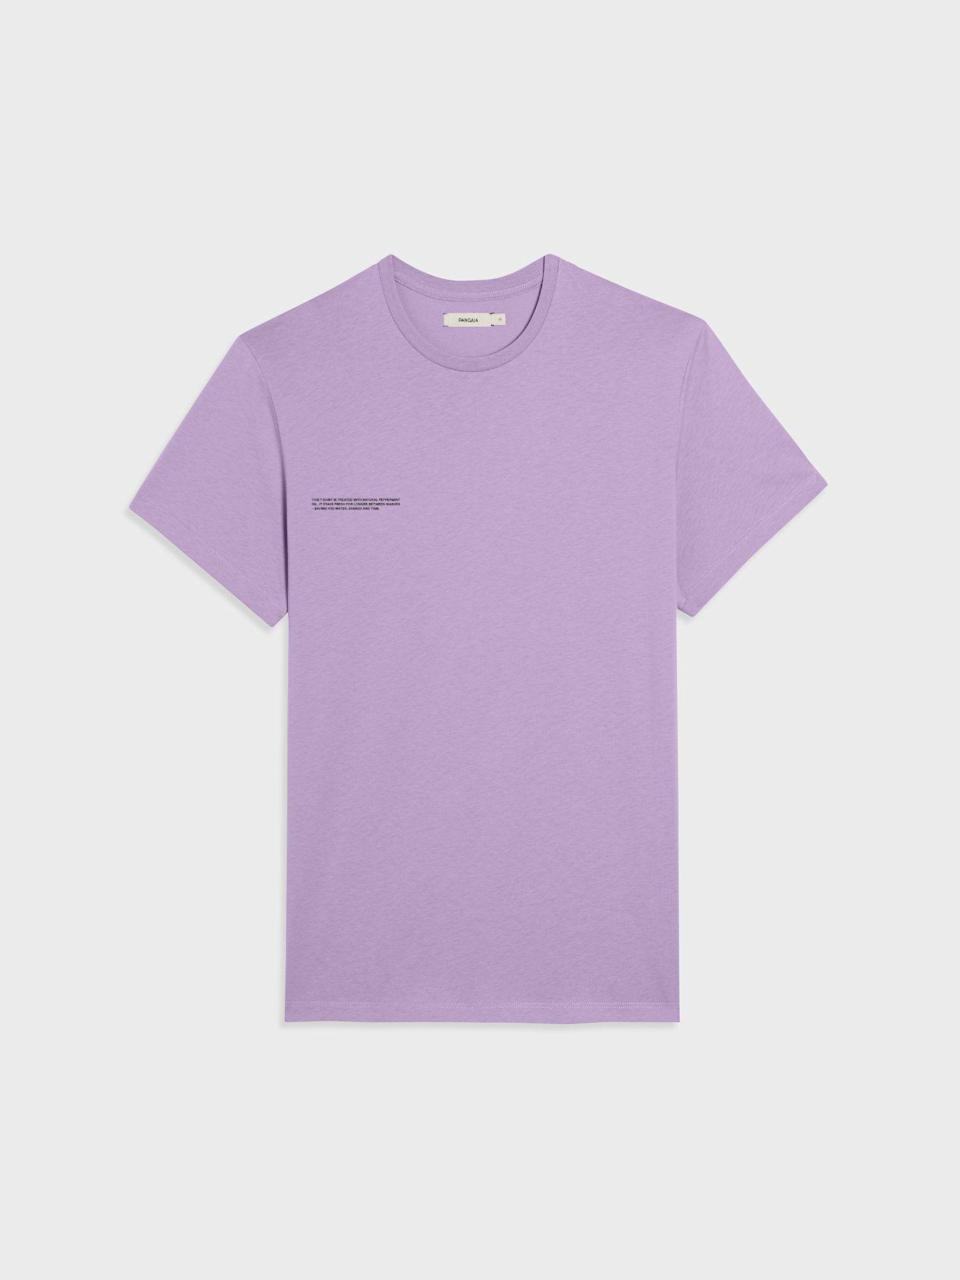 """<p>thepangaia.com</p><p><strong>$55.00</strong></p><p><a href=""""https://thepangaia.com/collections/men-t-shirts/products/pprmint-organic-cotton-t-shirt-orchid-purple"""" rel=""""nofollow noopener"""" target=""""_blank"""" data-ylk=""""slk:BUY IT HERE"""" class=""""link rapid-noclick-resp"""">BUY IT HERE</a></p><p>Pangaia makes the ideal graphic tees with minimalist designs, which are all made as sustainably as possible. We love this lavender for a bright buy, but the brand is always coming out with fun color options. </p>"""